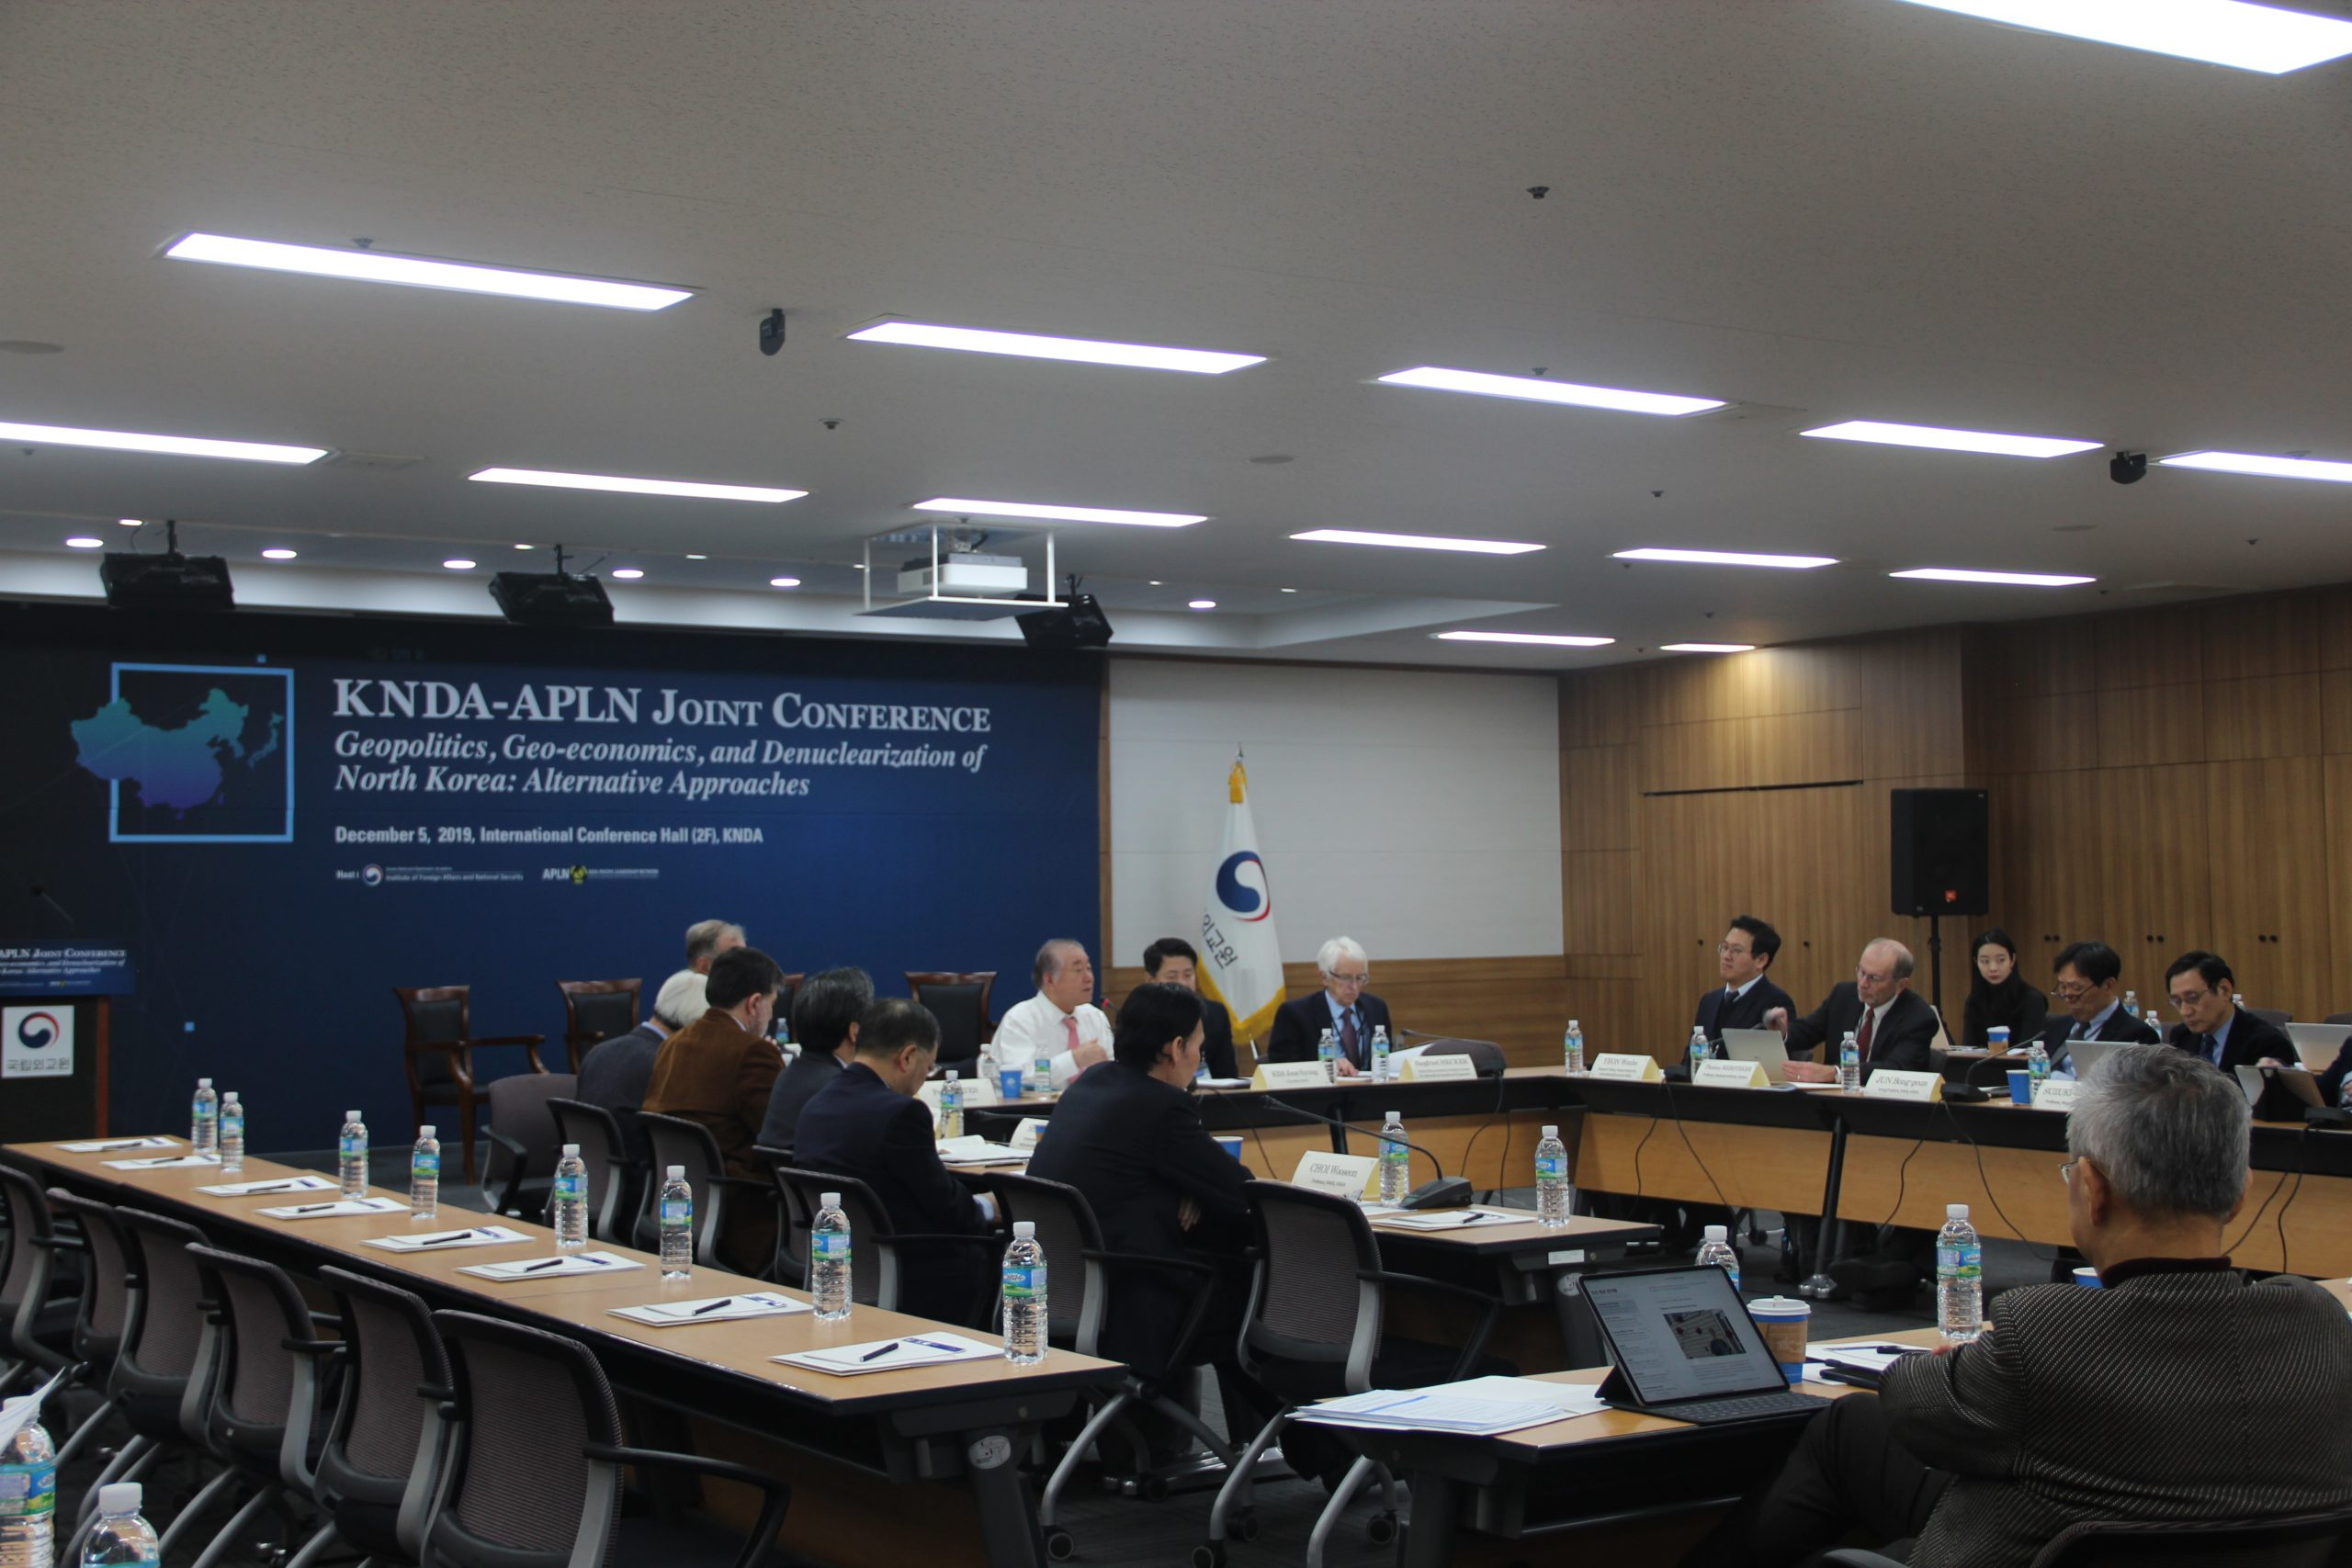 APLN-KNDA Joint Conference